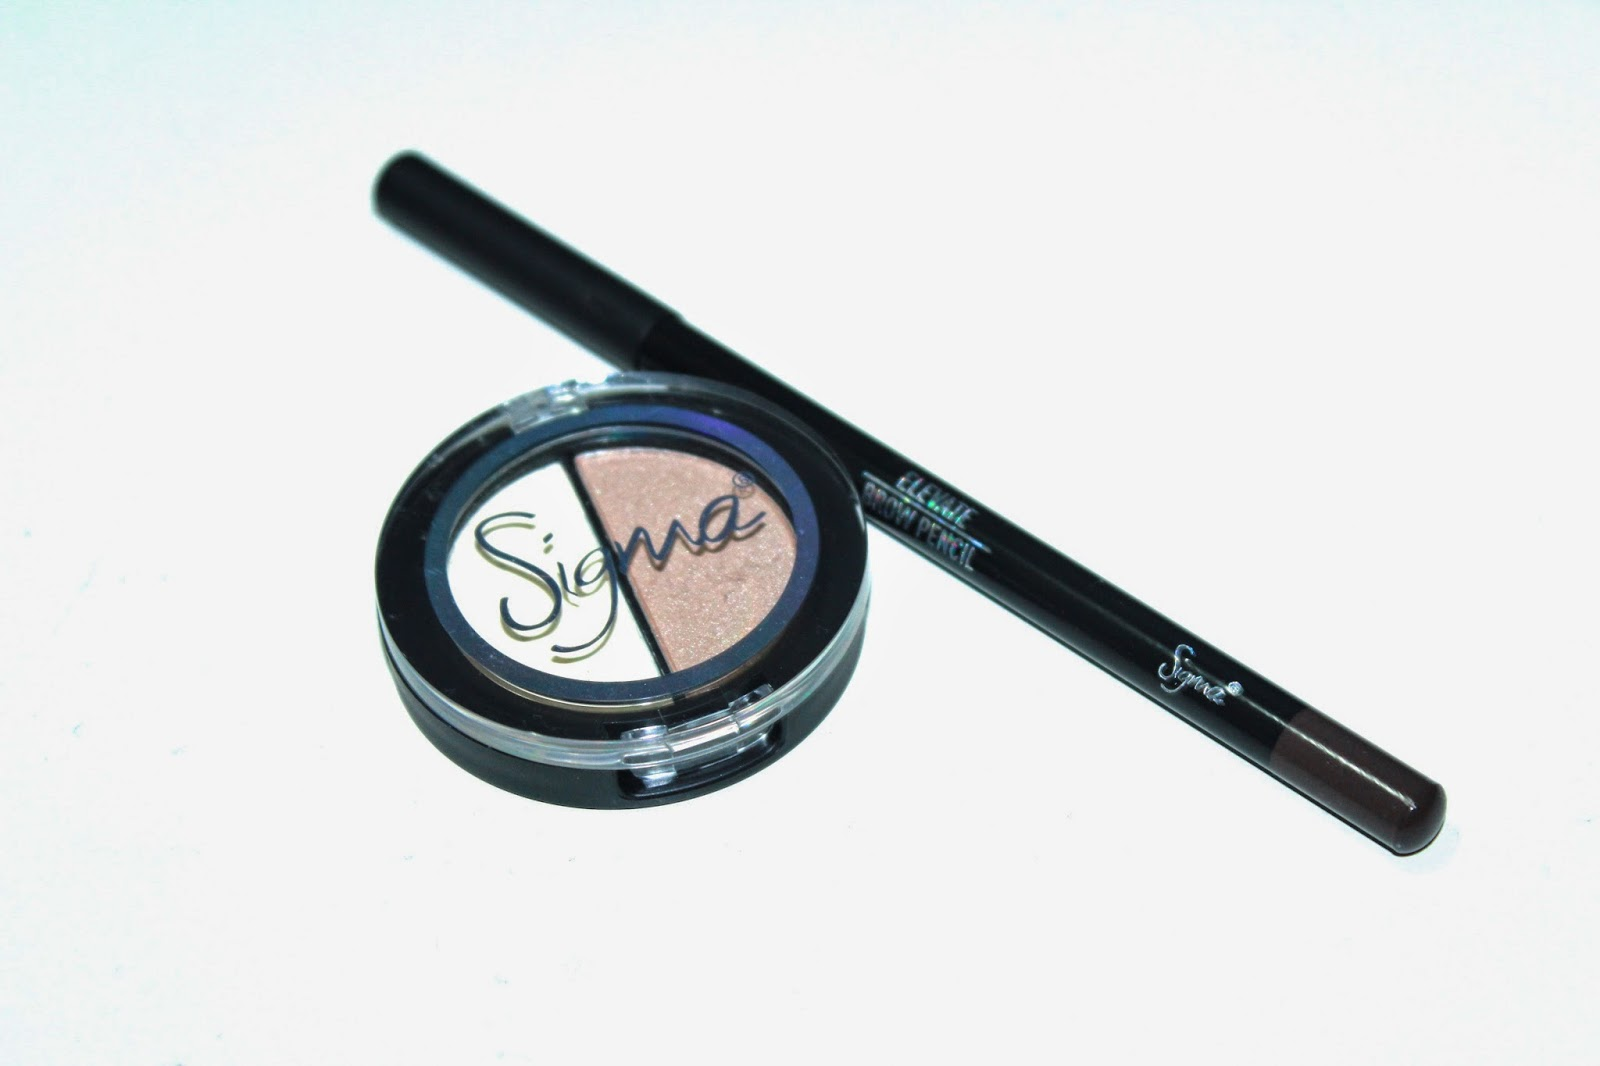 Brow Highlighting Pencil by Sigma #14